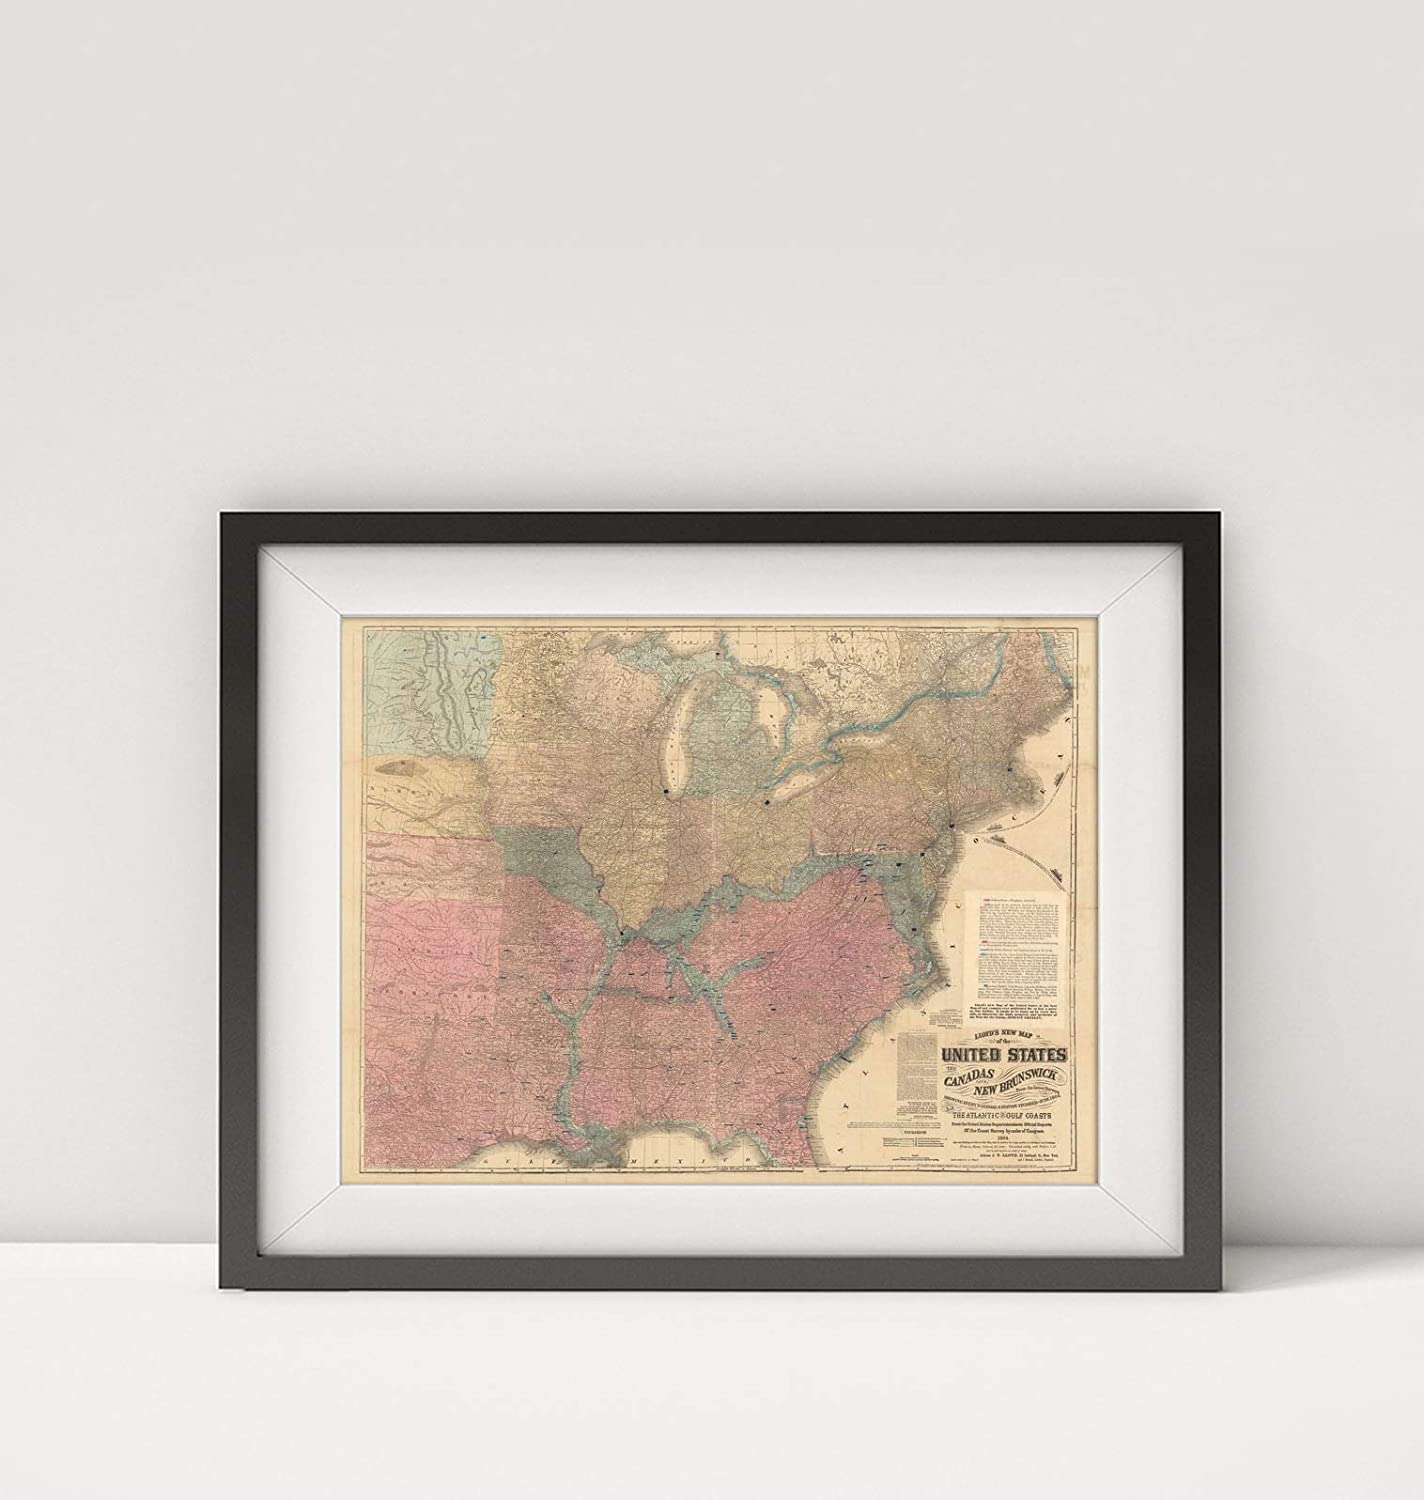 Infinite Photographs 1864 Map of United States|Lloyd's New Map of The United States, The Canadas and New Brunswick, showi